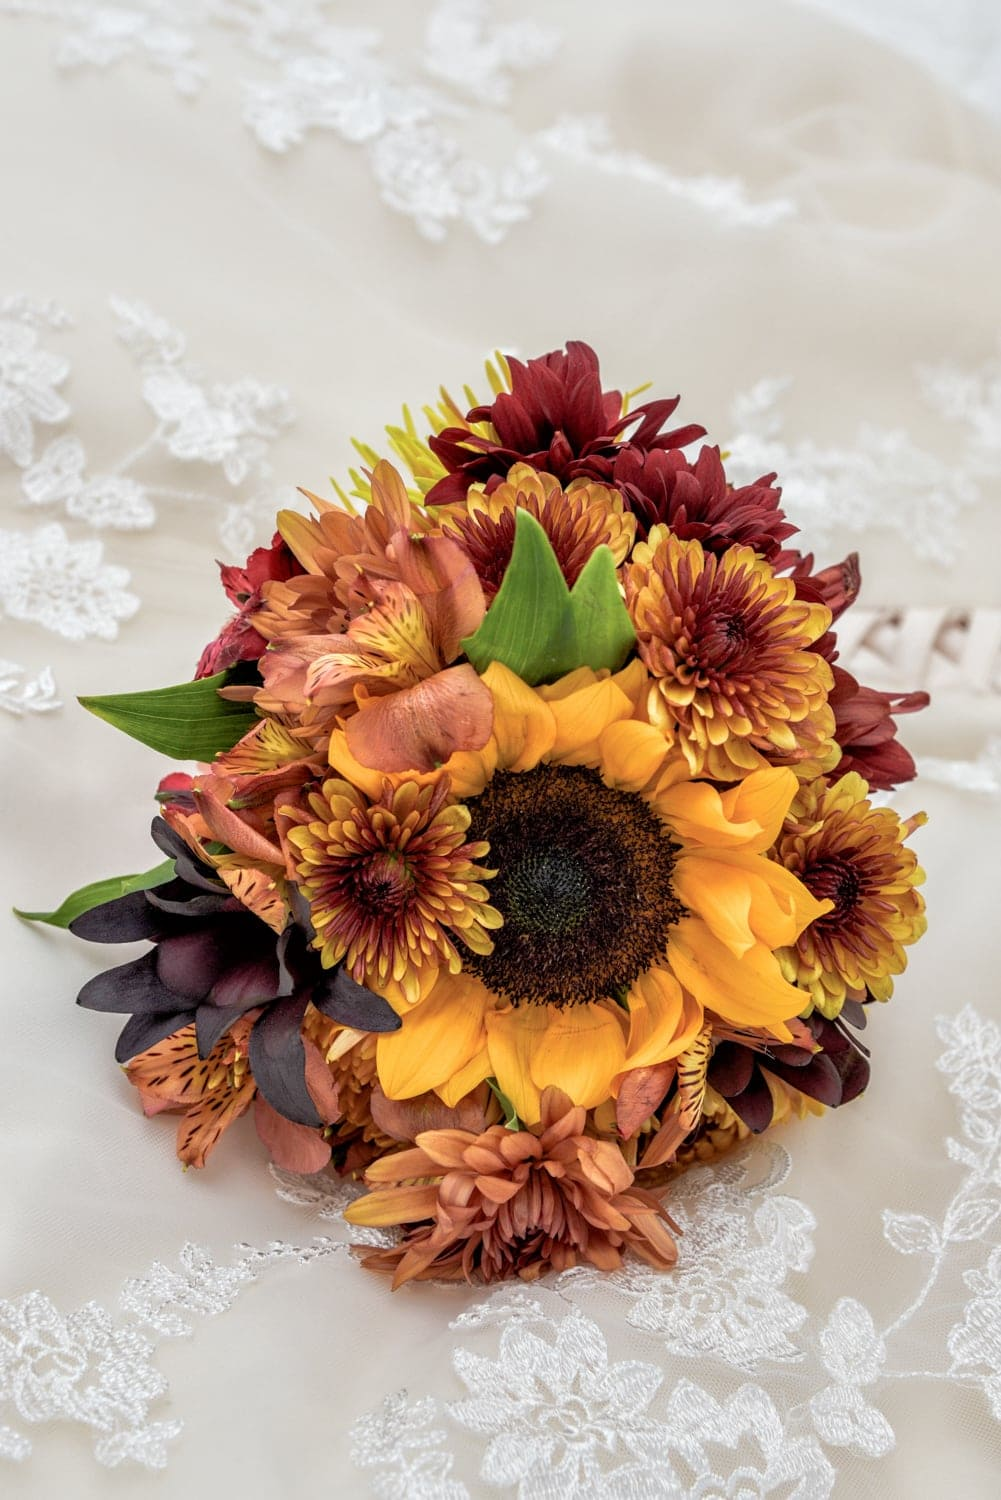 A beautiful sunflower wedding bridal bouquet with brown accents.